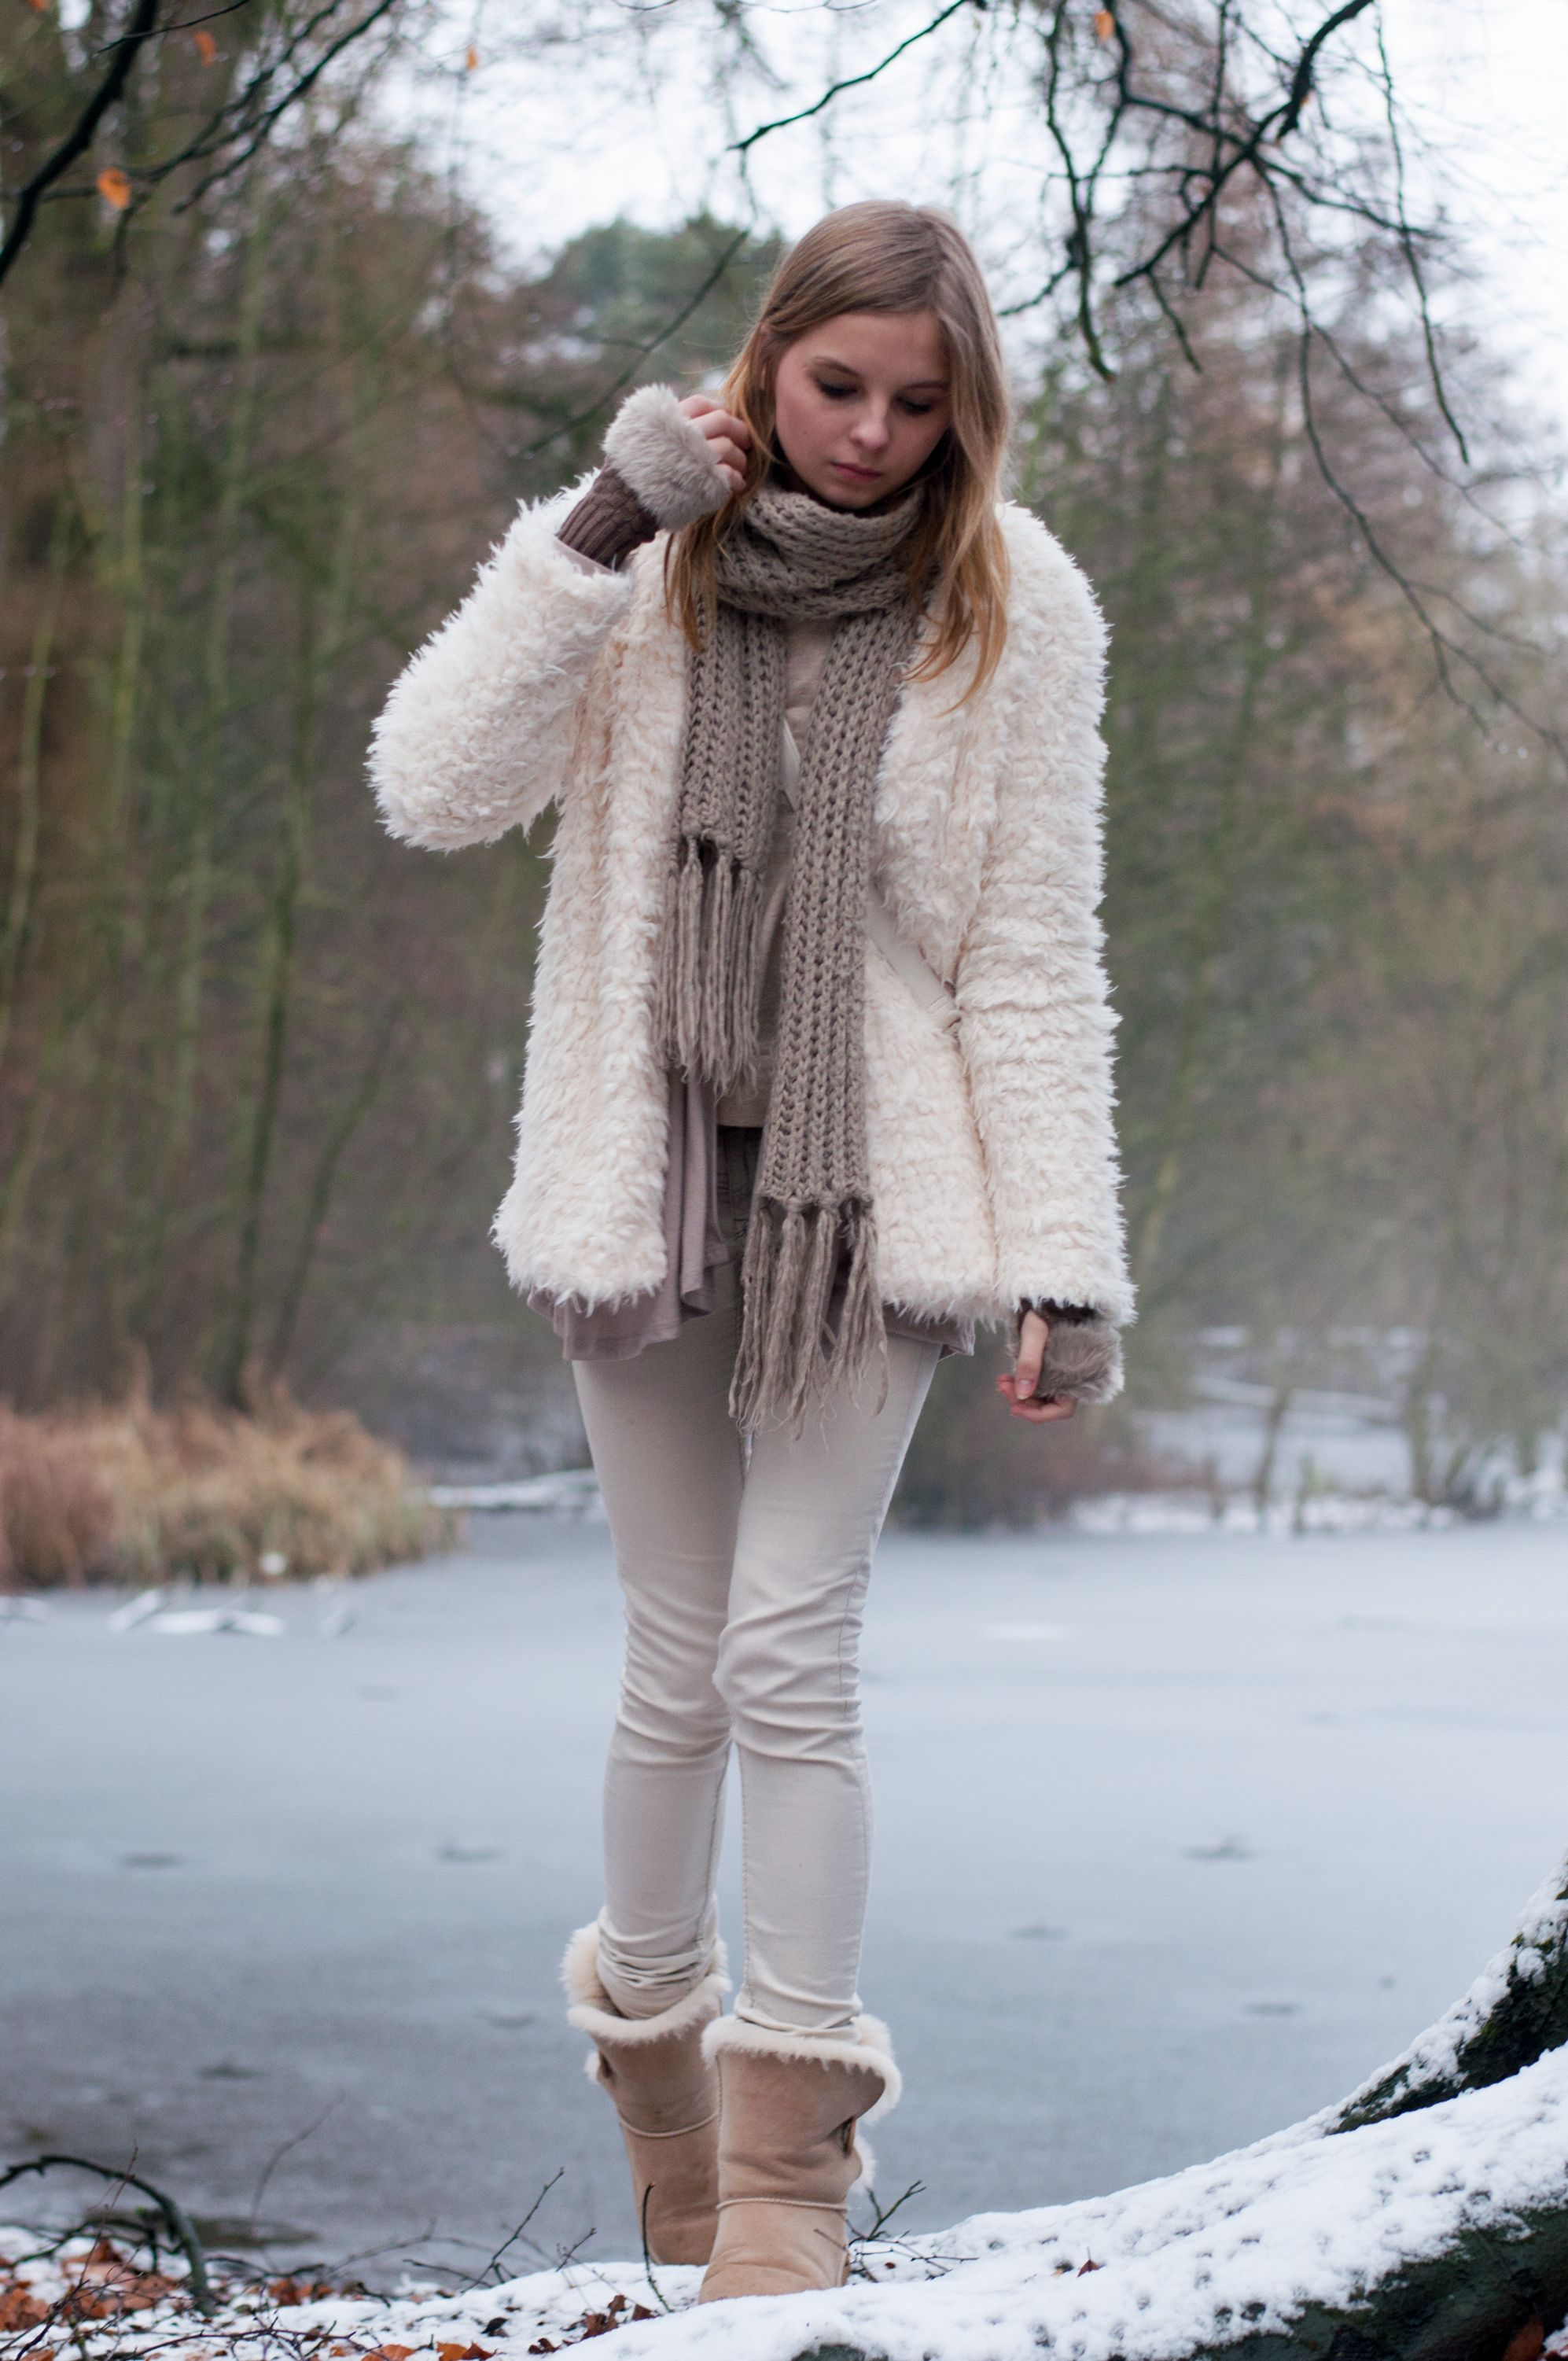 49efdc0db Winter Style, cozy: beige sheepskin Teddy Coat, beige Scarf, cute fur  gloves and Ugg Boots, warm Look - Hamburg, Streetstyle, Outfit, Blogger